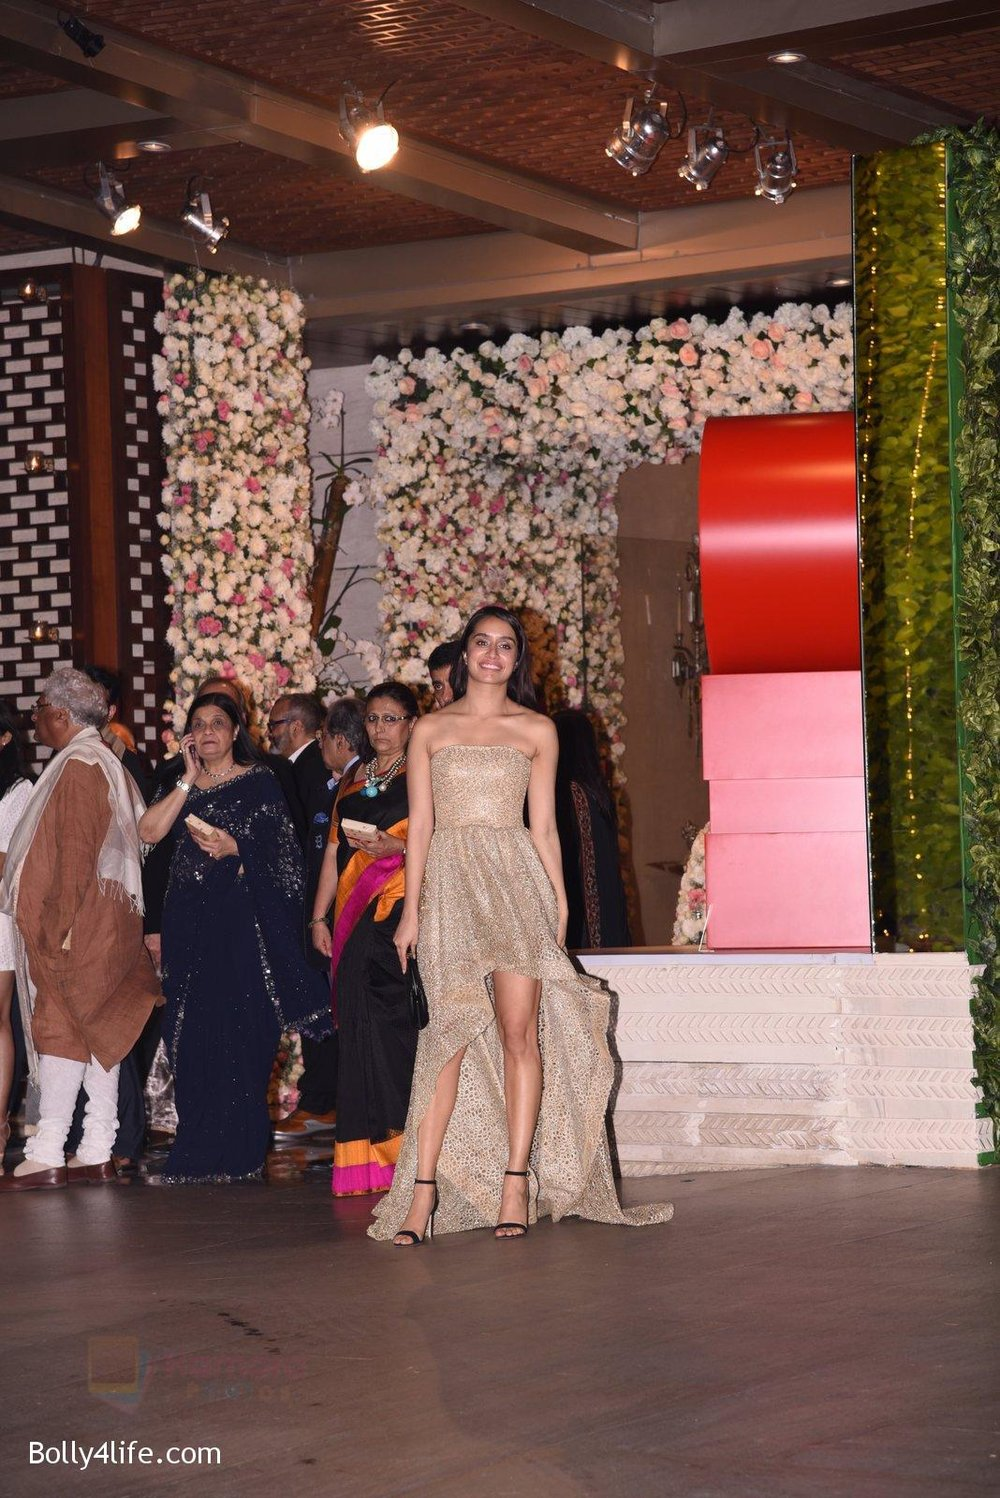 Shraddha-Kapoor-at-the-Ambanis-wedding-party-of-their-niece-Isheta-Salgaoncar-1.jpg